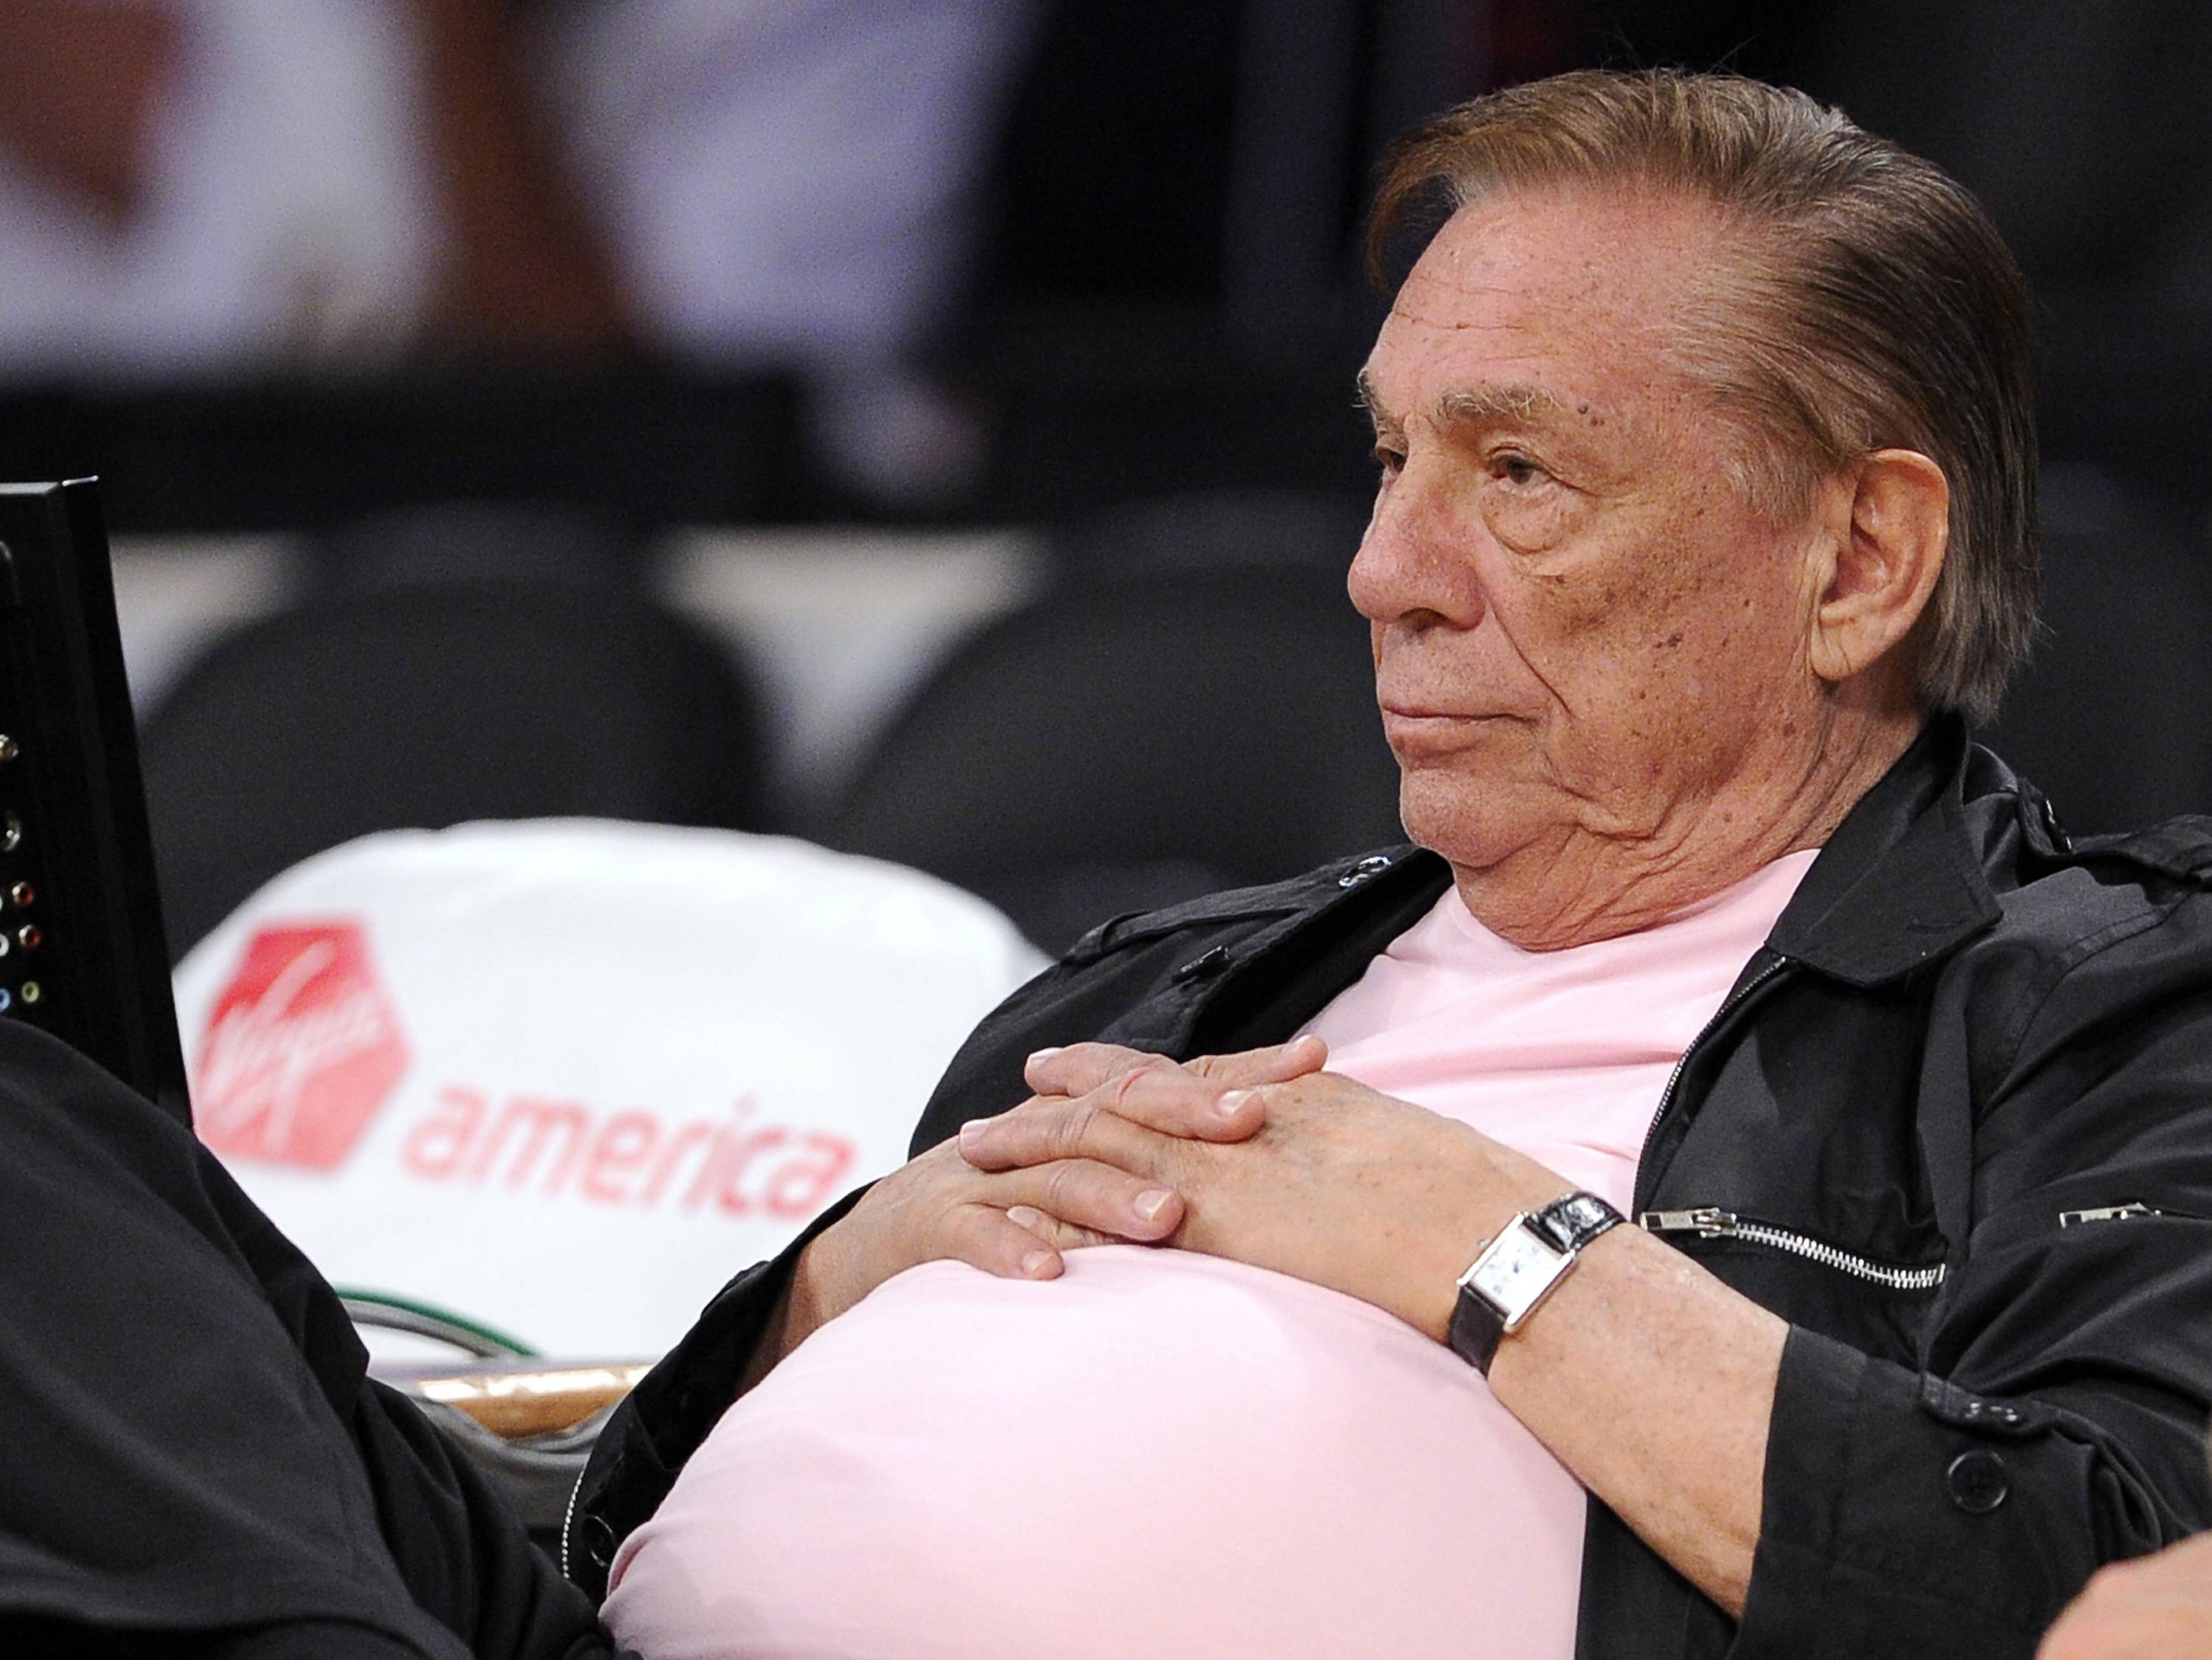 Los Angeles Clippers co-owner Donald Sterling still hasn't signed off on the deal to sell the team to former Microsoft CEO Steve Ballmer because the NBA won't revoke its $2.5 million fine and lifetime ban, according to a person with knowledge of the negotiations.